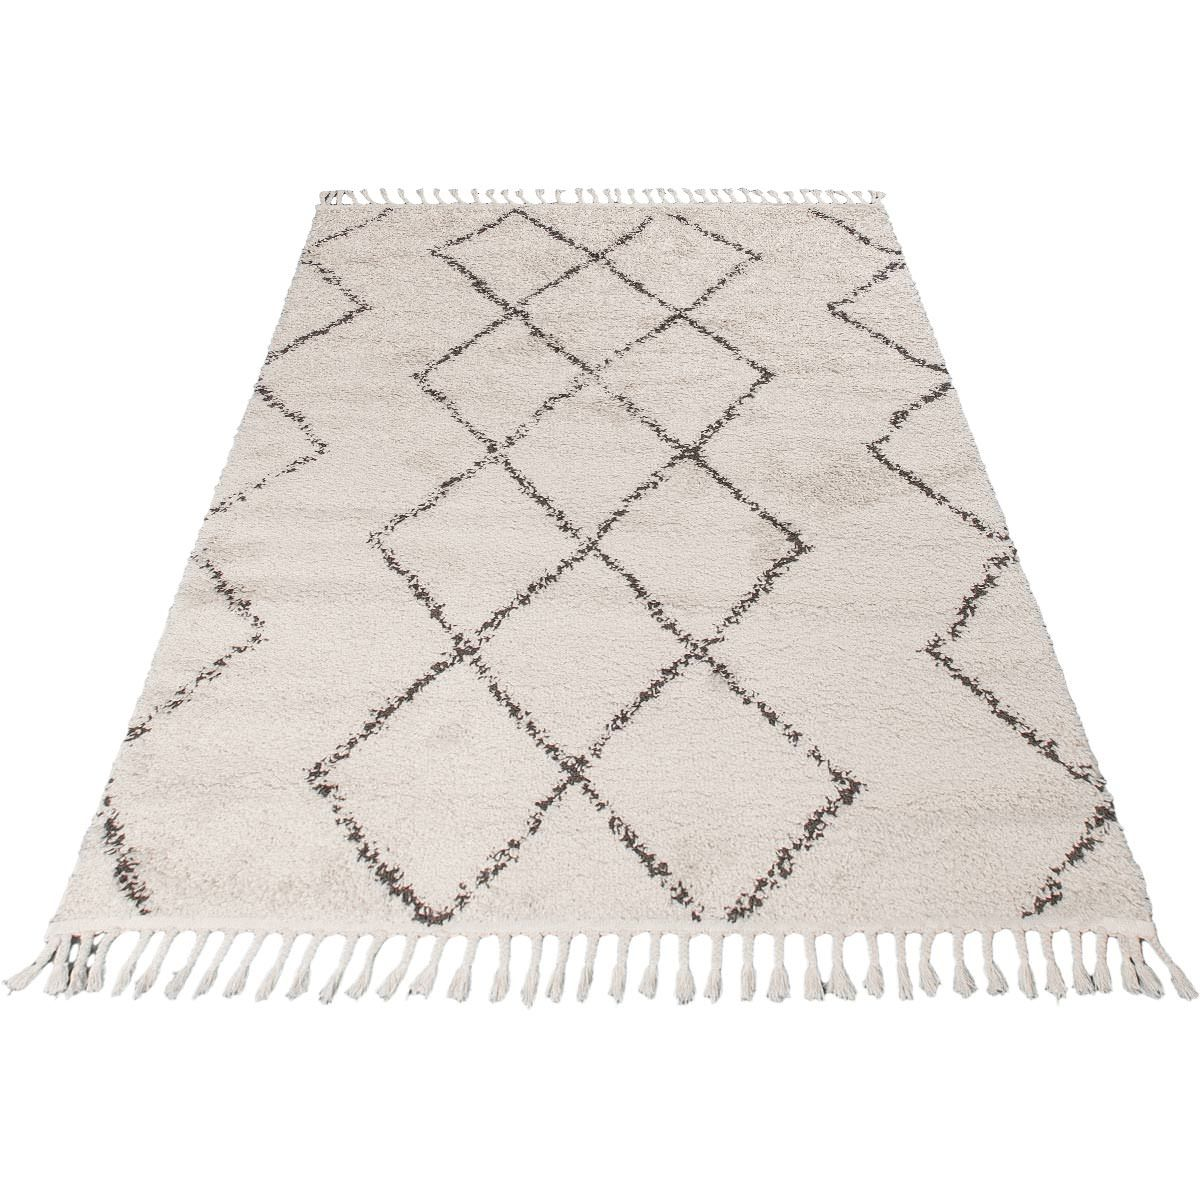 Shaggy Marrakech Rug 03 Cream/Black 8